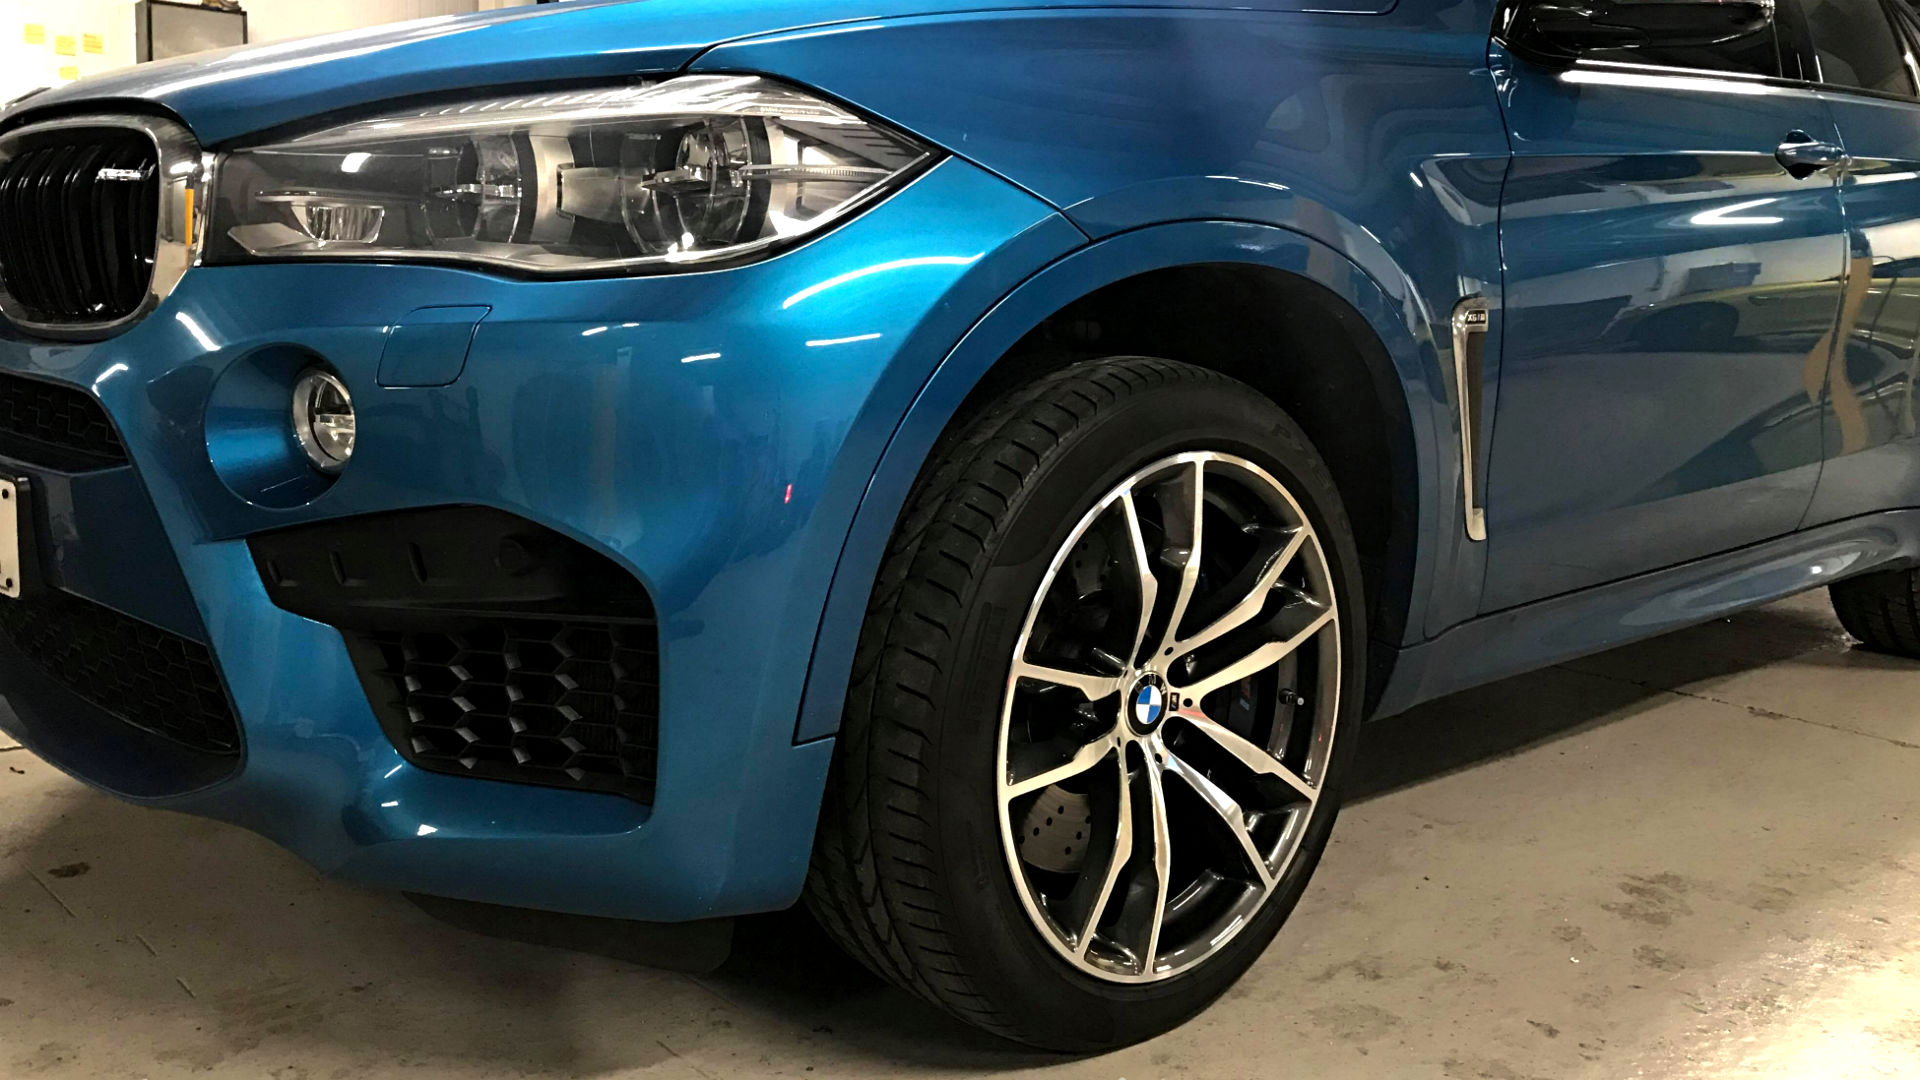 Our main goal is alloy wheels performance and quality. We have straightening machine to get your wheels to factory specifications.